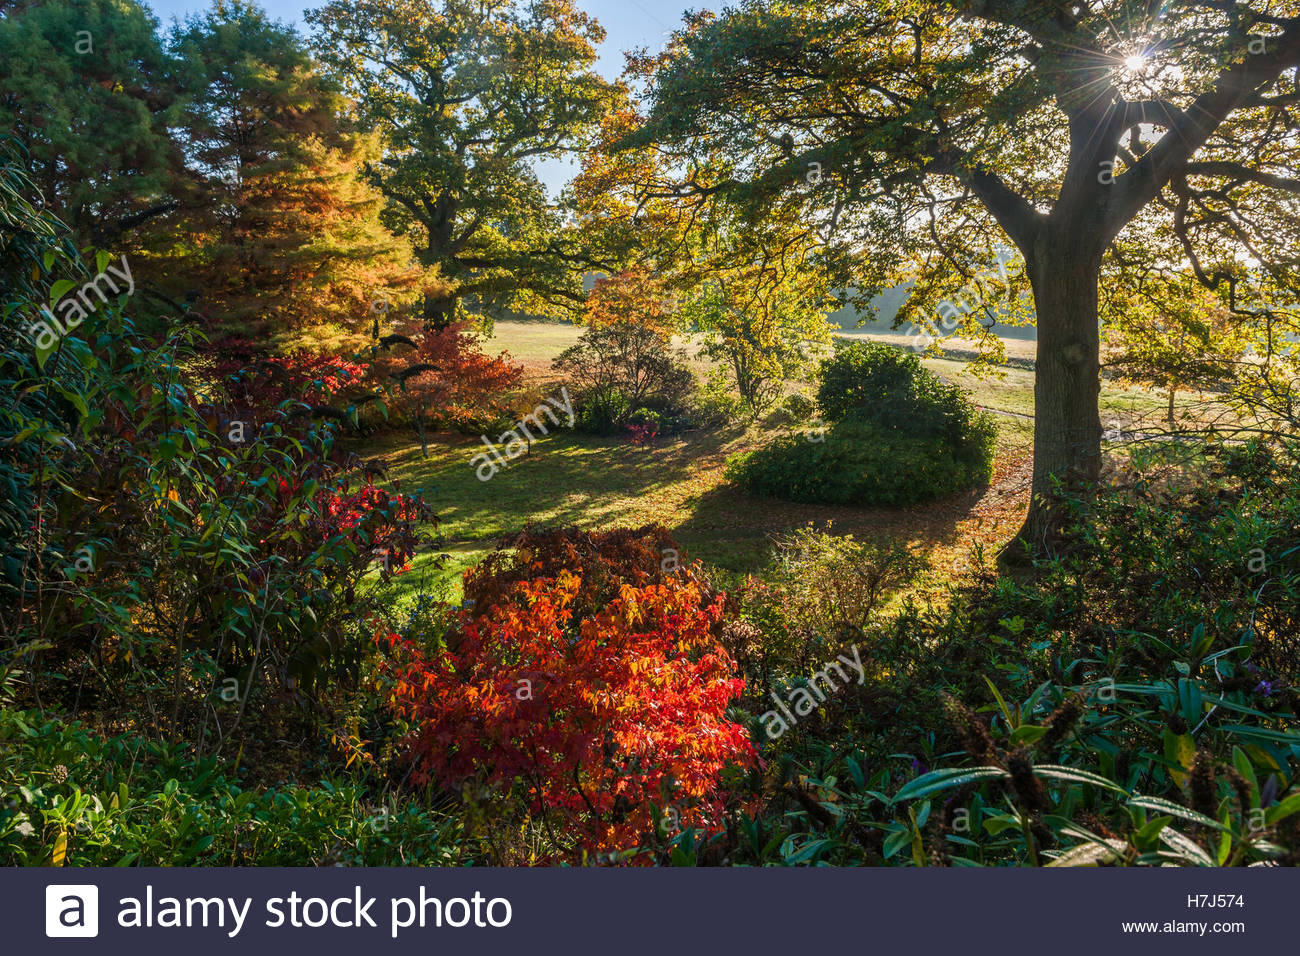 trees and shrubs in autumn - Stock Image